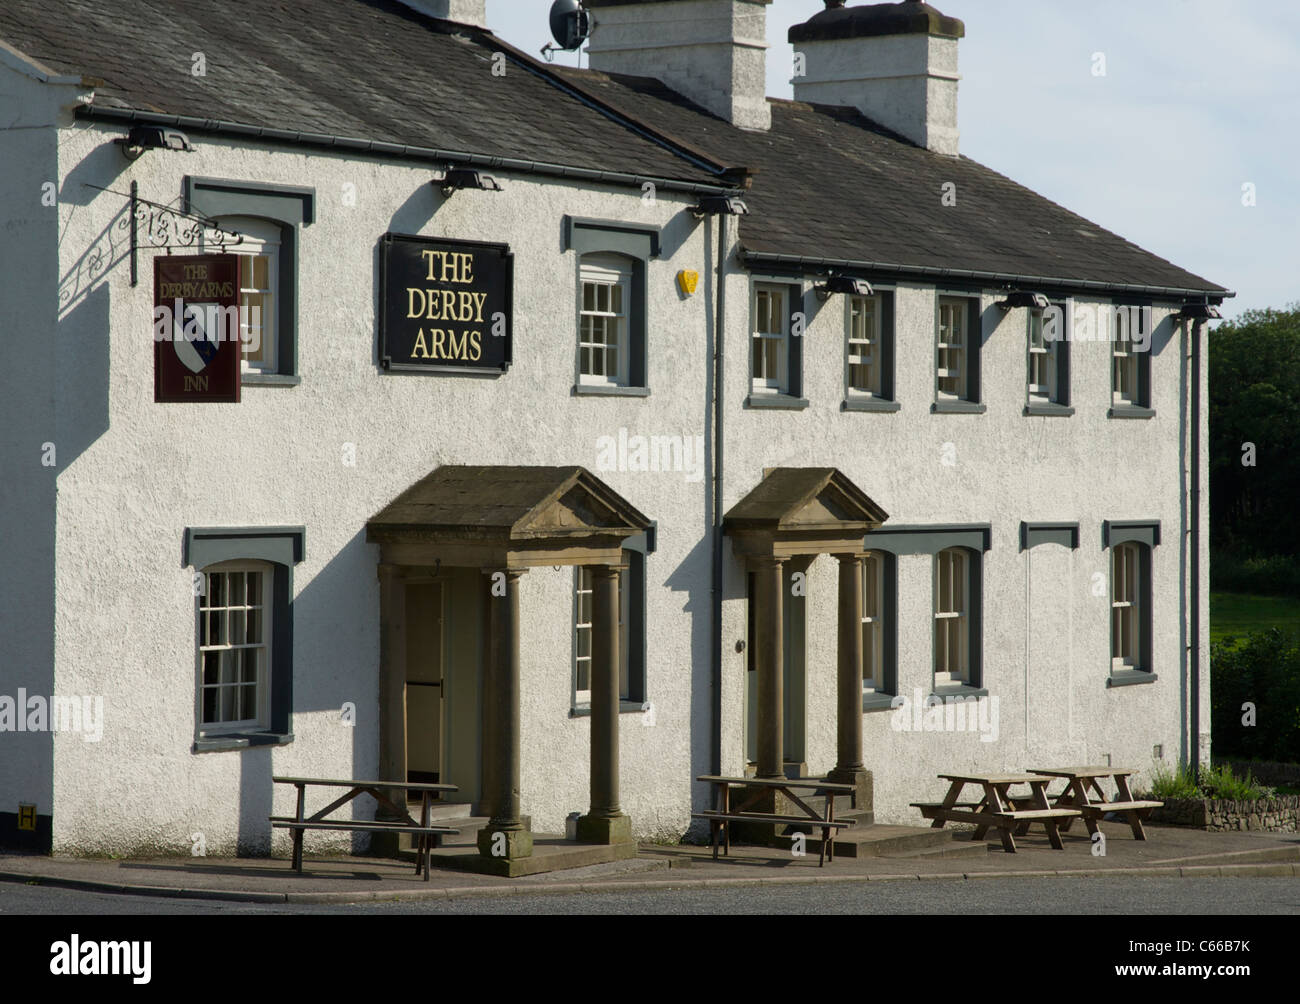 The Derby Arms in Witherslack, South Lakeland, Lake District National Park, Cumbria, England UK - Stock Image